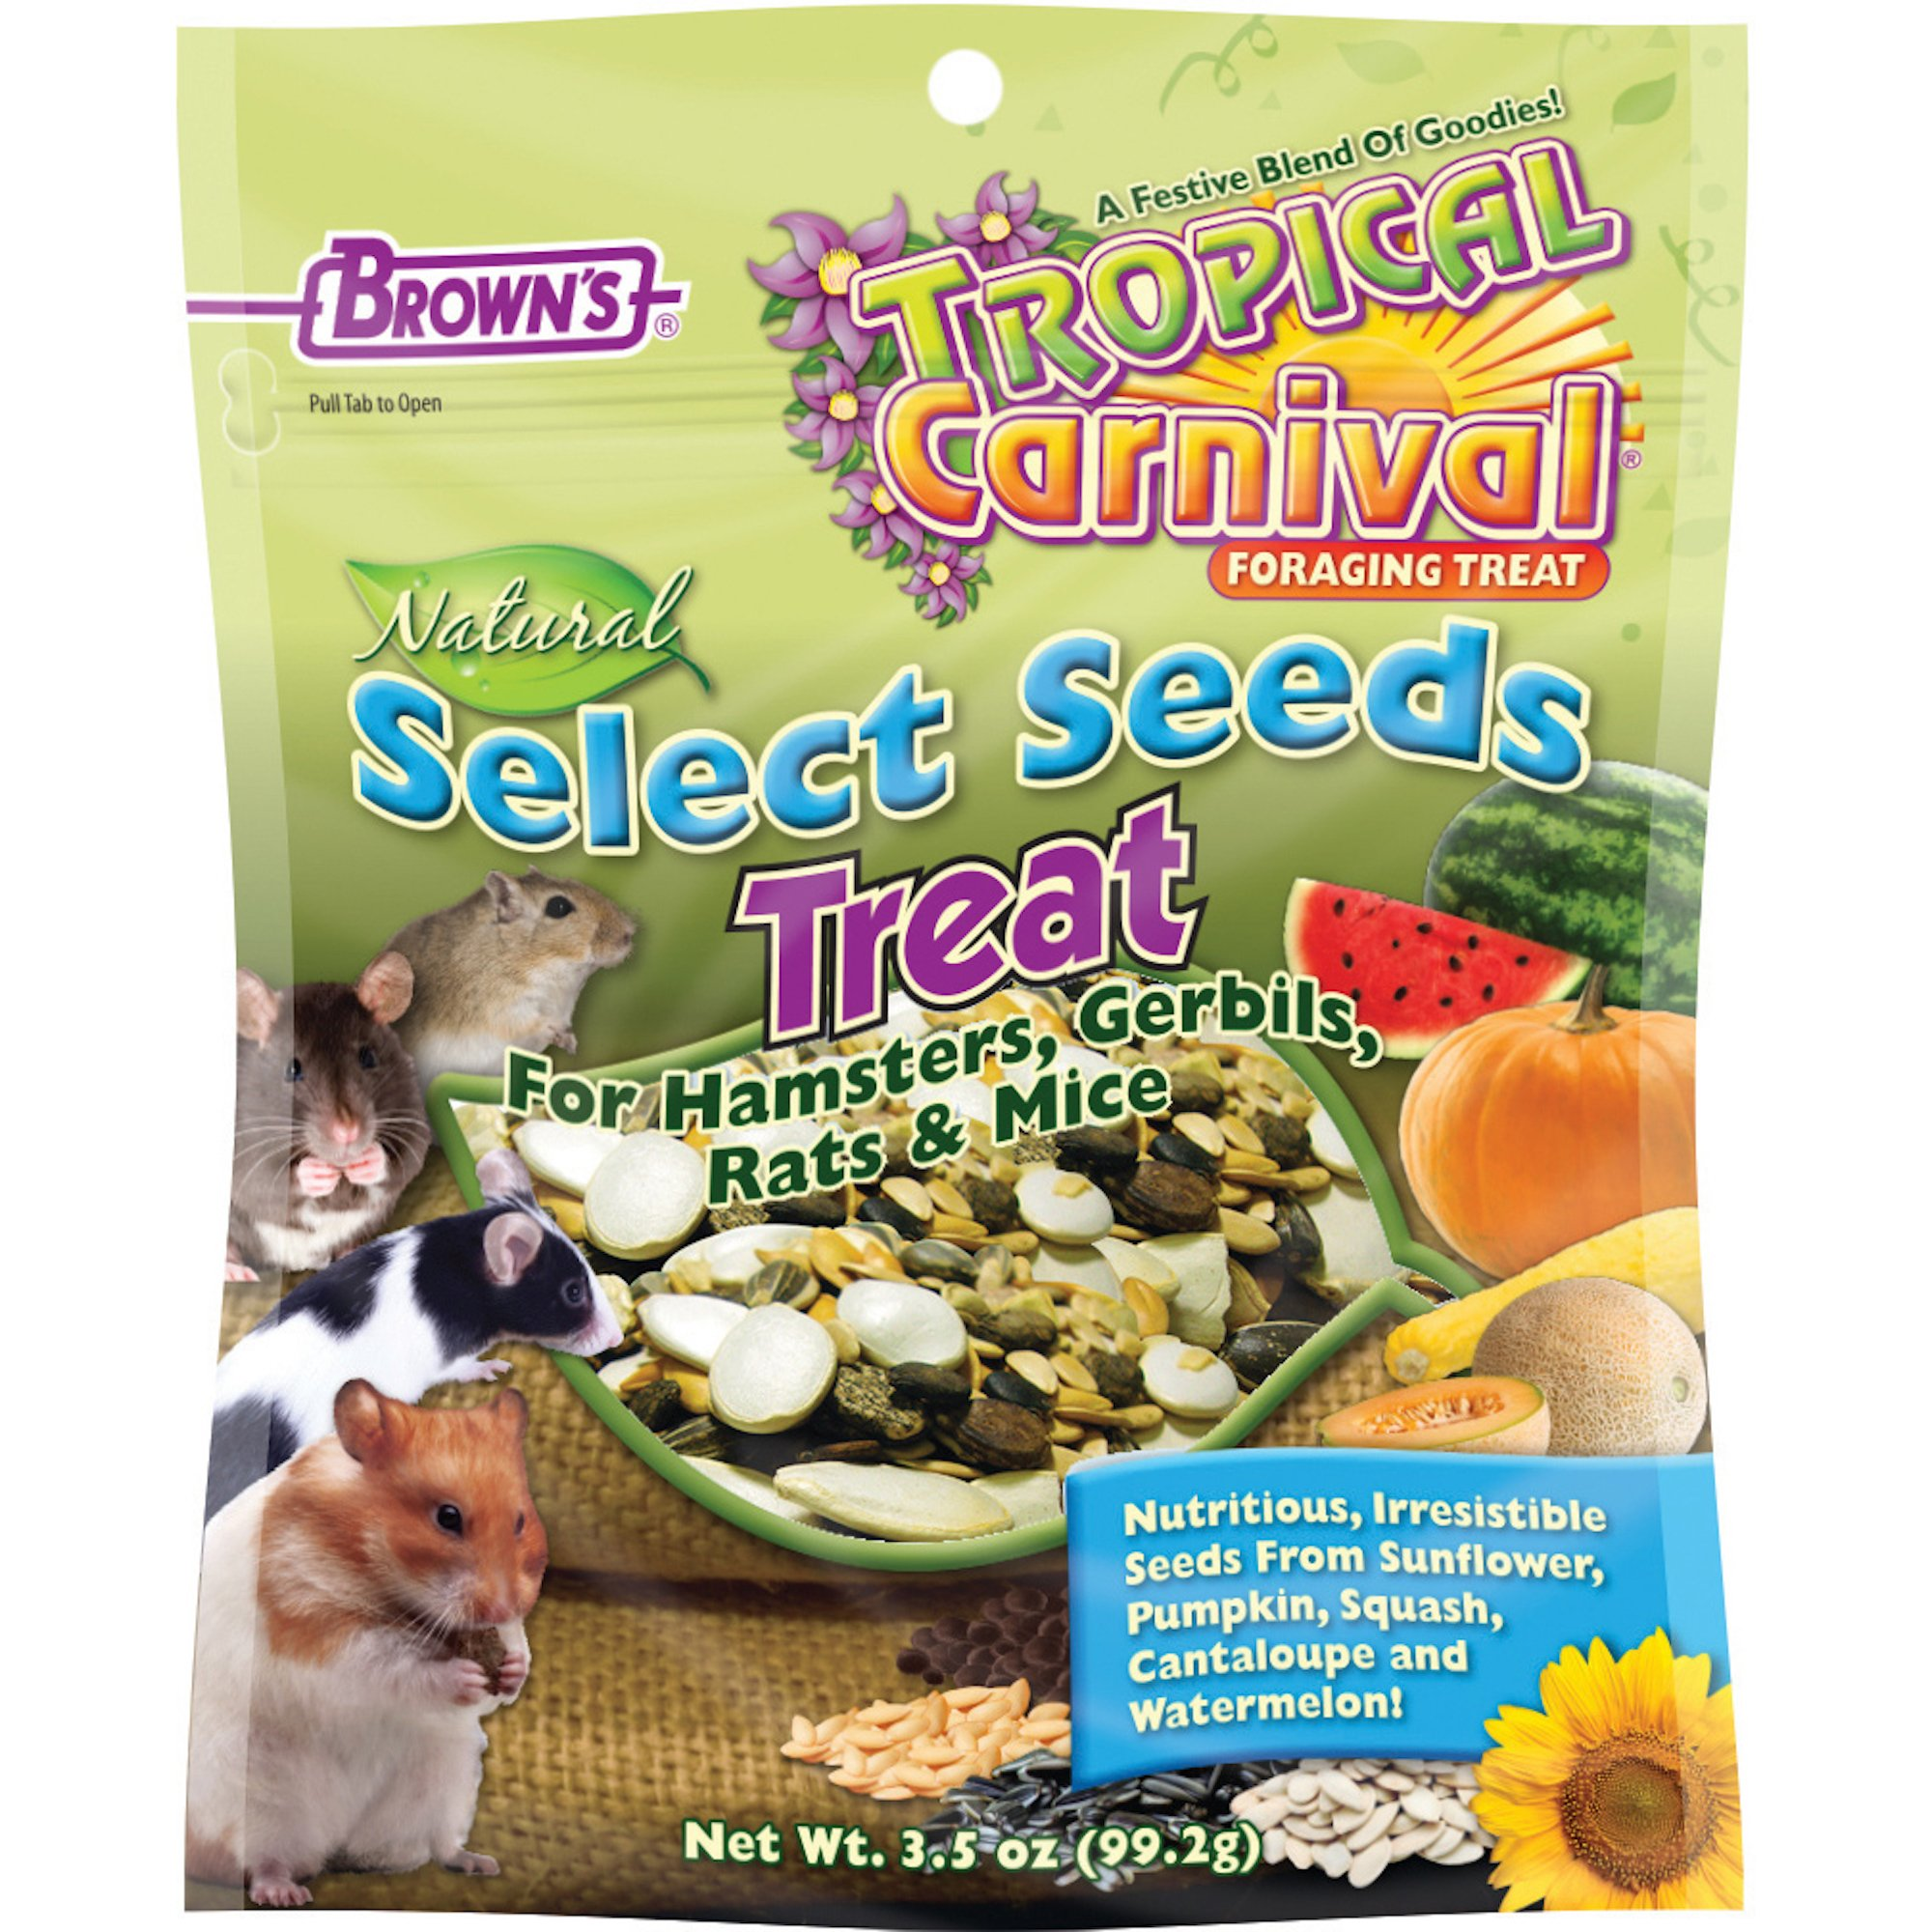 1f1b4f8d03fd Brown's Tropical Carnival Natural Select Seeds Treat | Petco